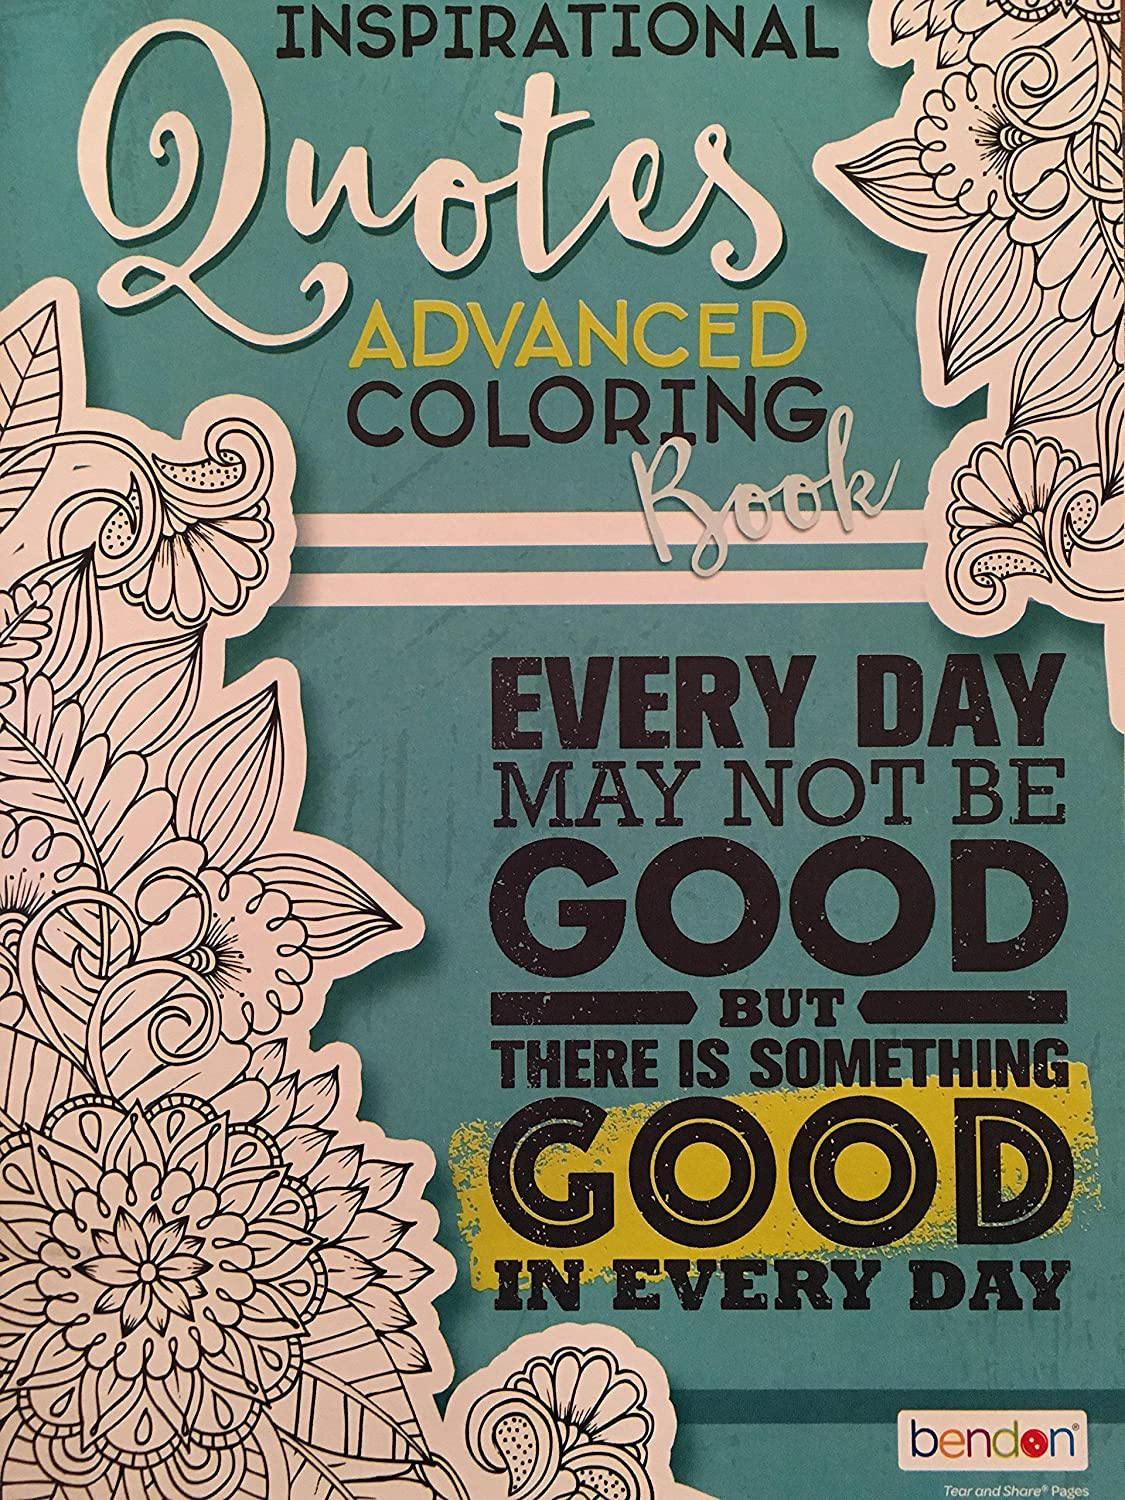 Bendon Adult Coloring Book Inspirational Quotes Advanced Coloring